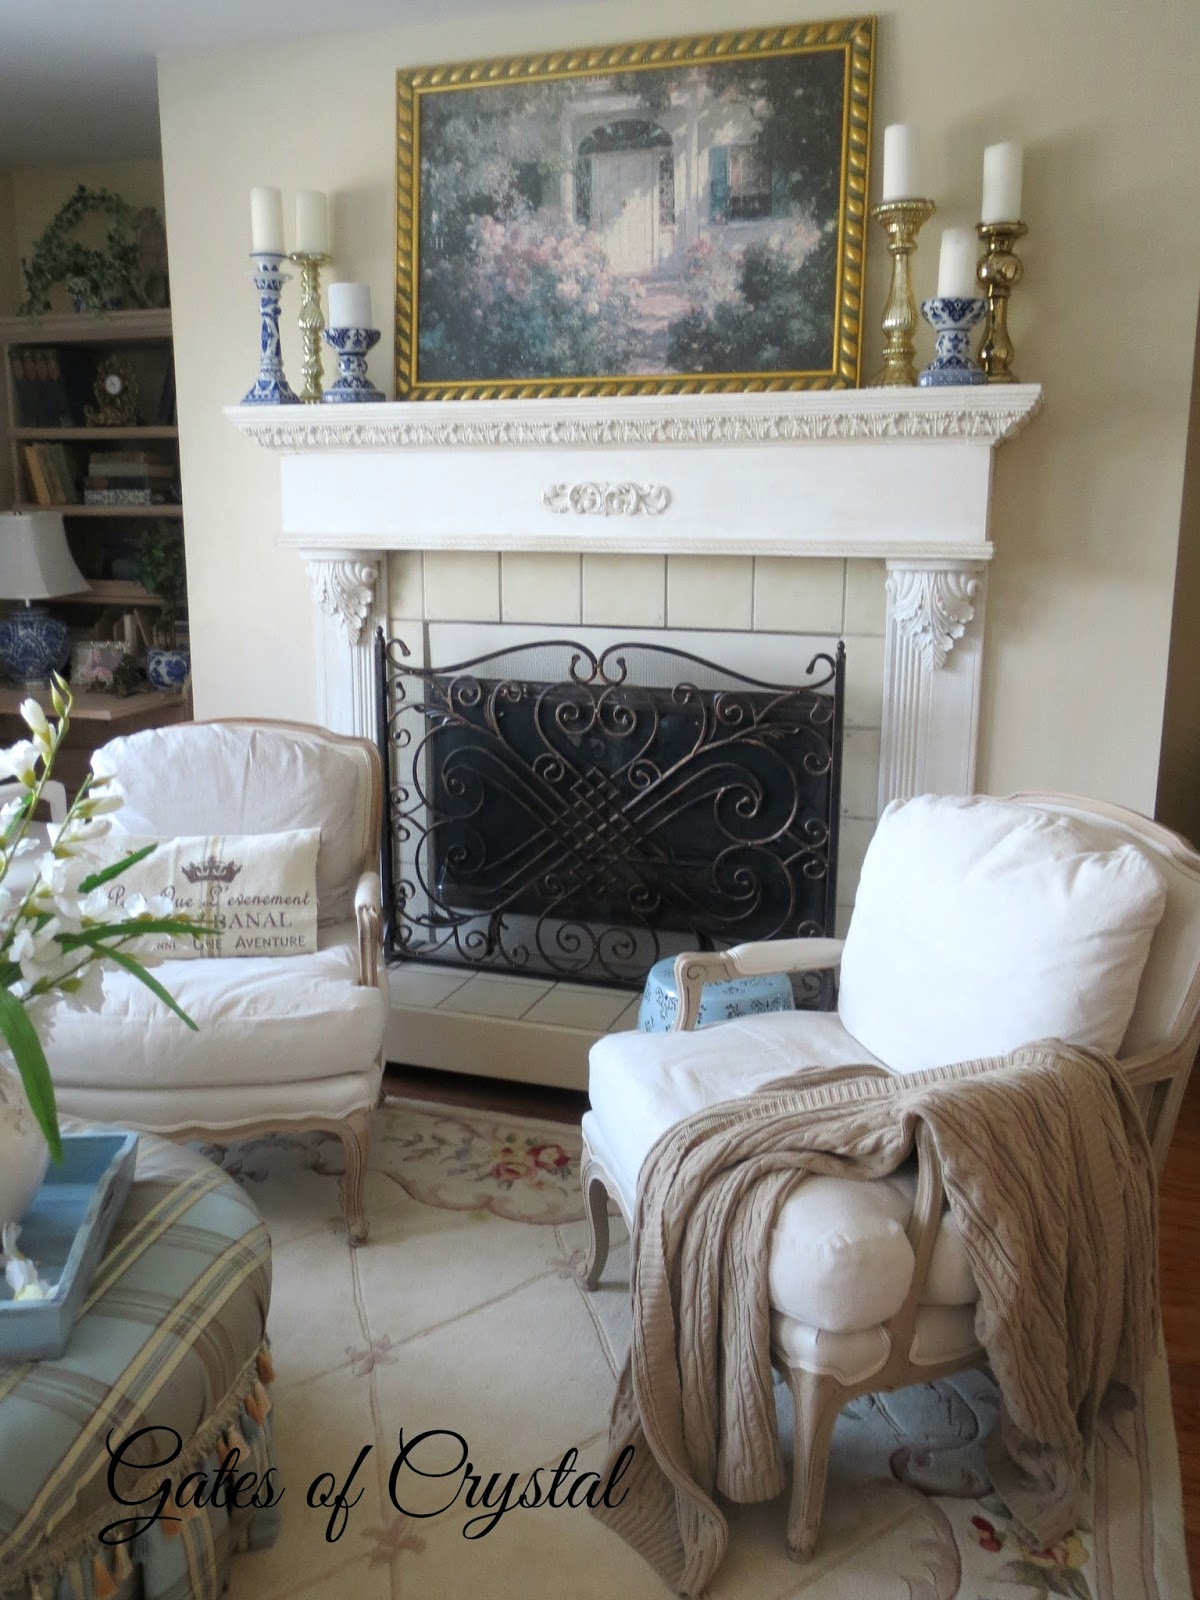 Gates Of Crystal: Fireplace Screen For The Livingroom